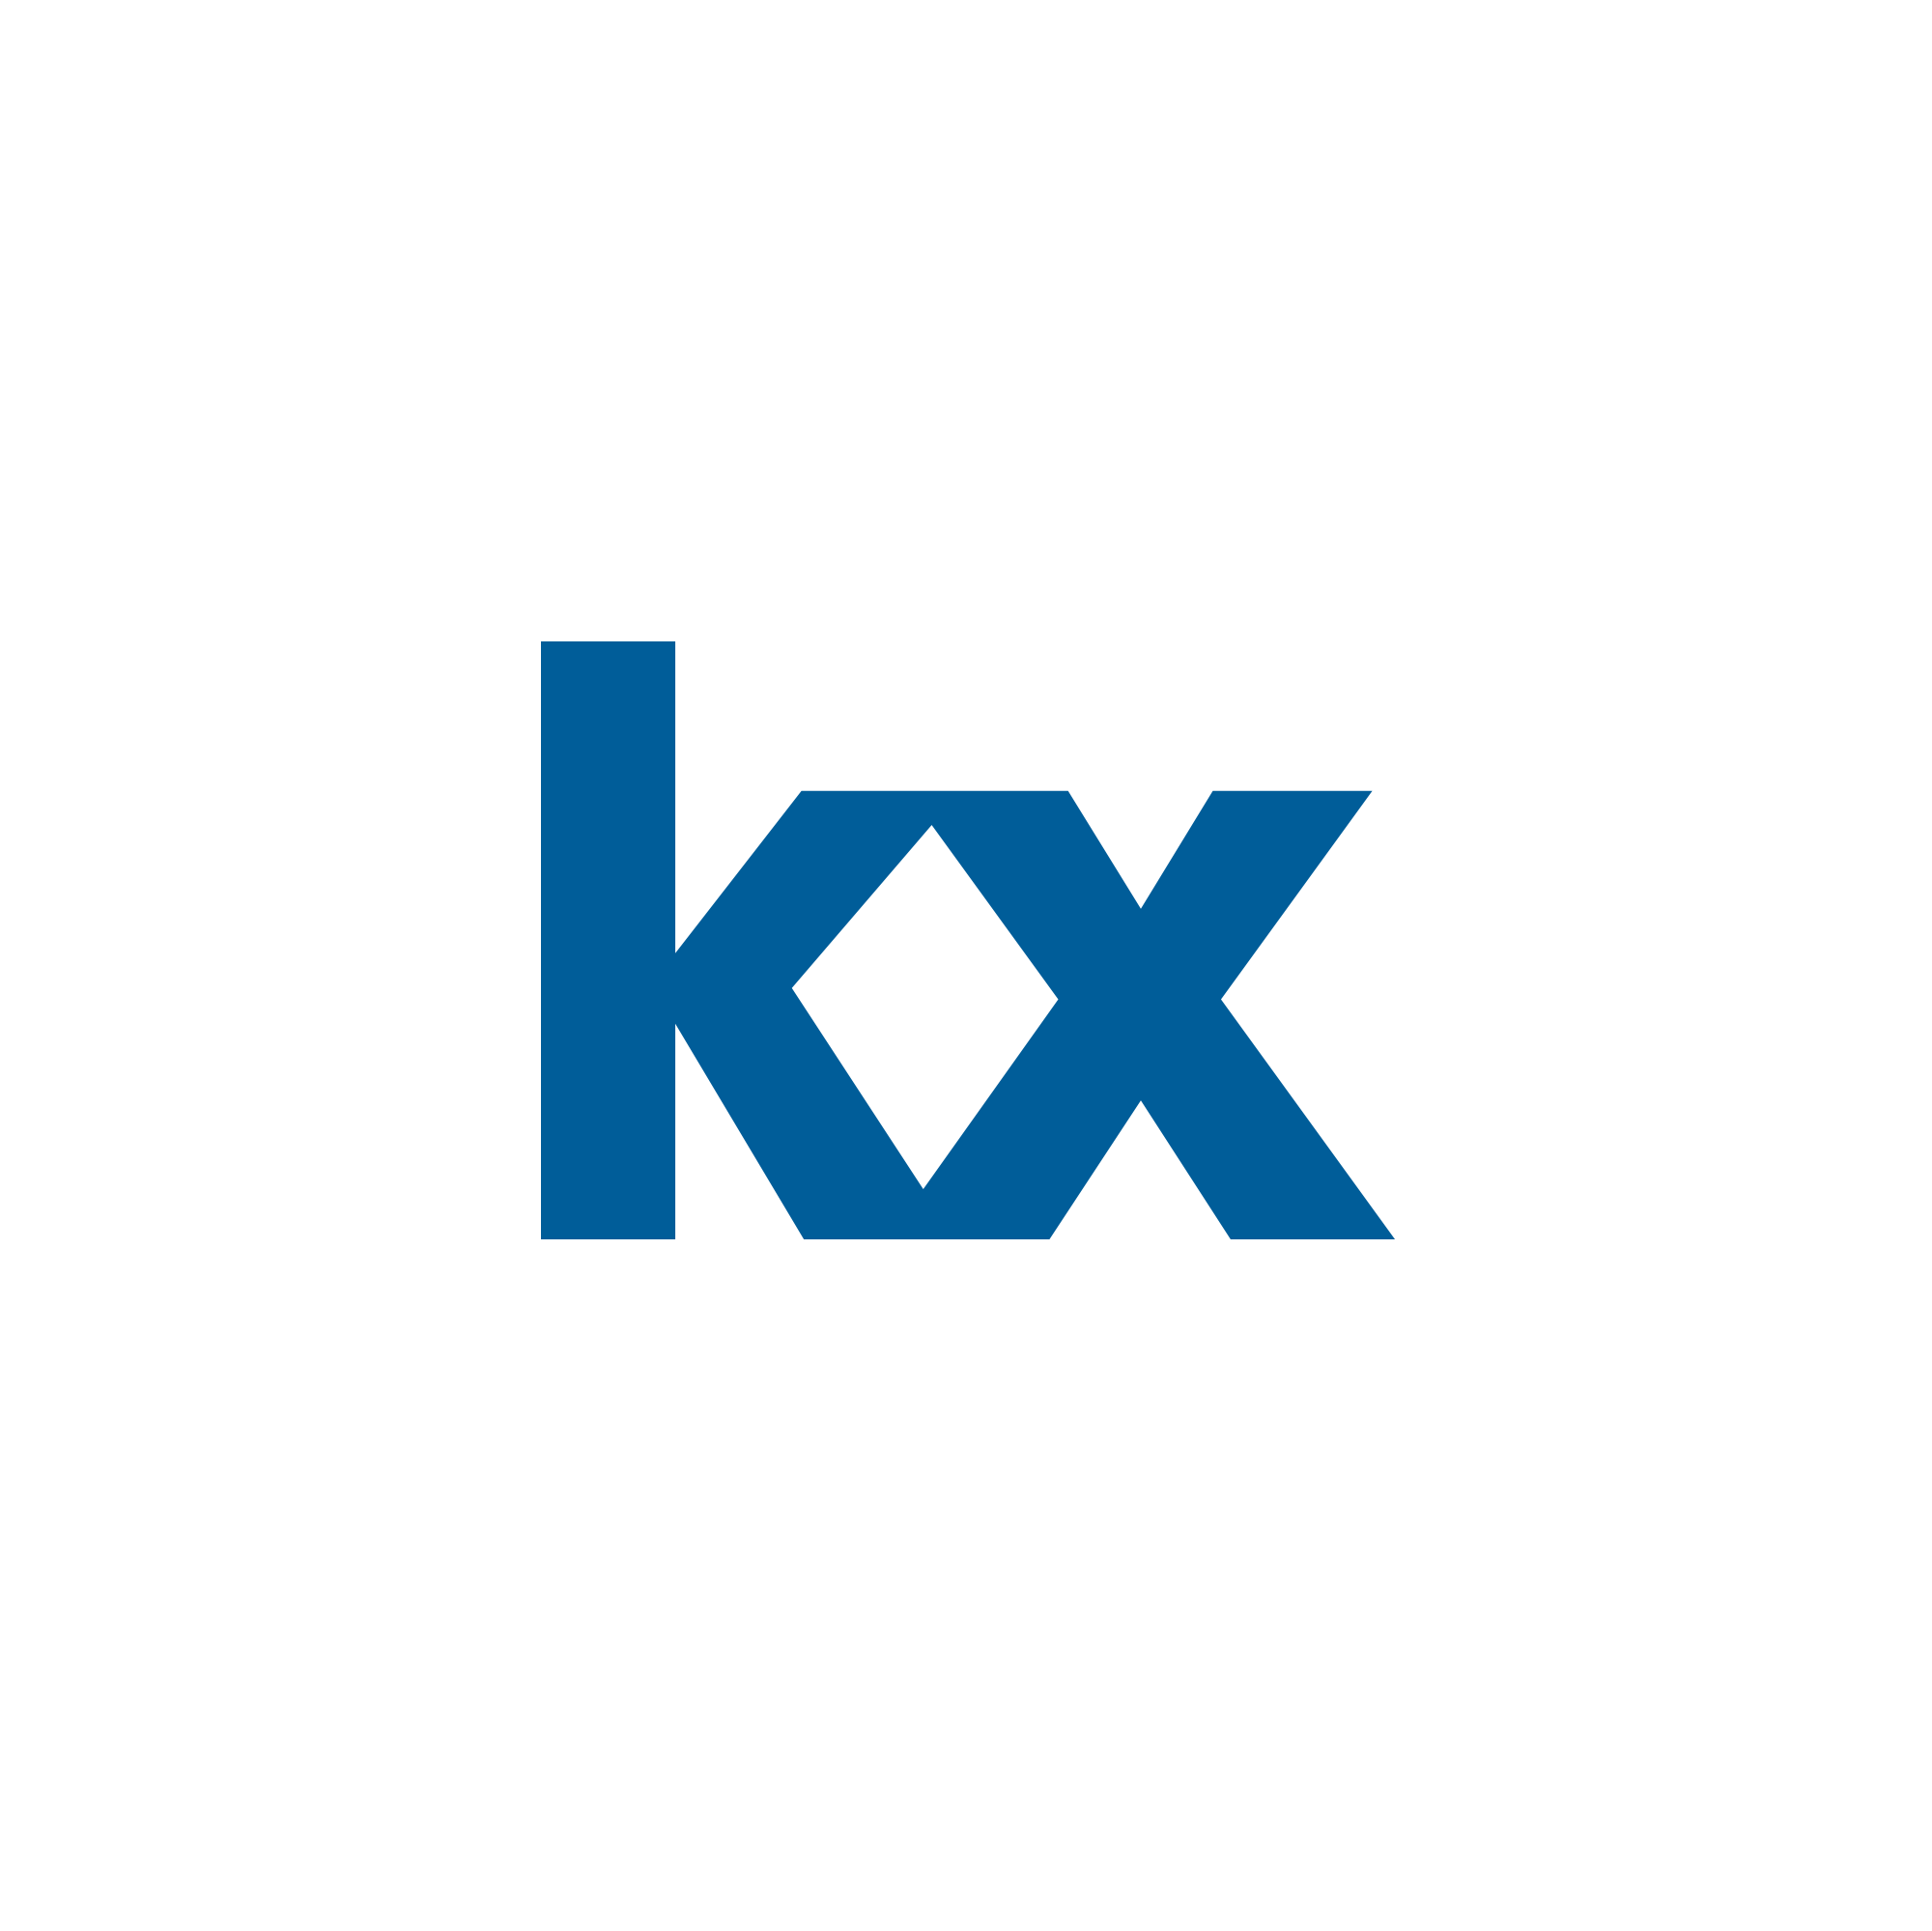 Kx Systems launches support for cryptocurrency trading